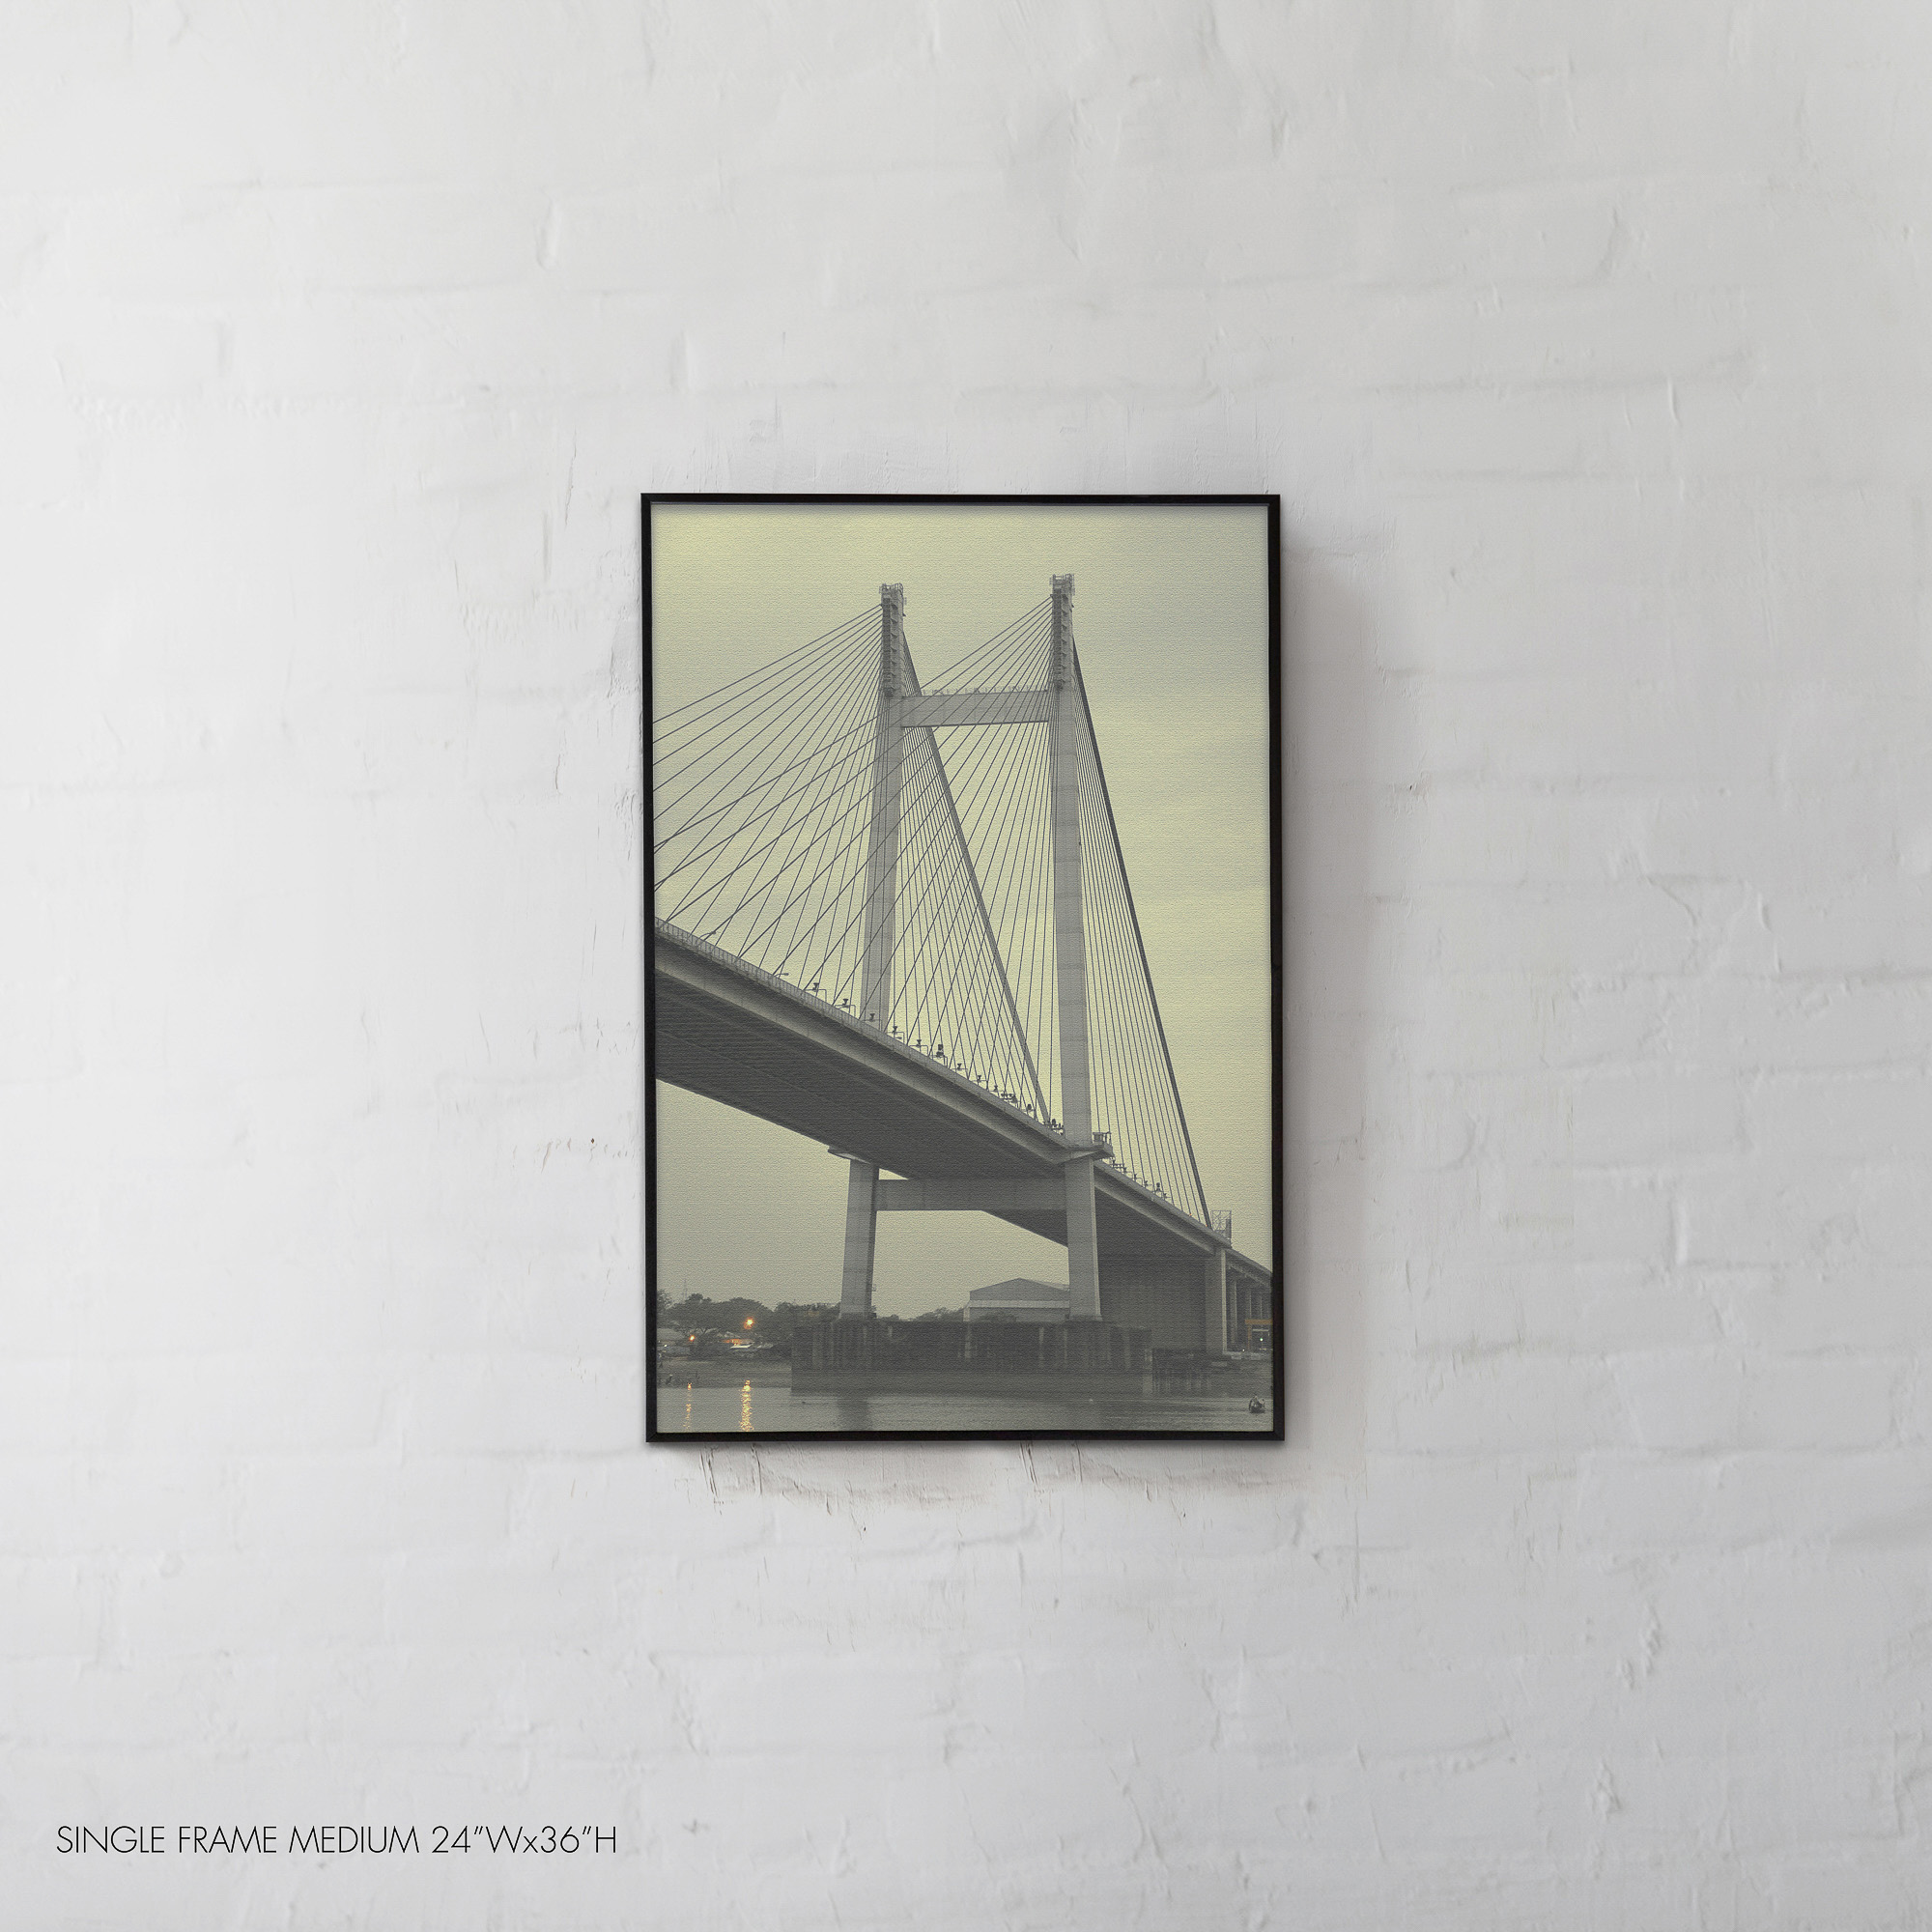 The pride of Hooghly River, Vidyasagar Setu suspension bridge, Kolkata